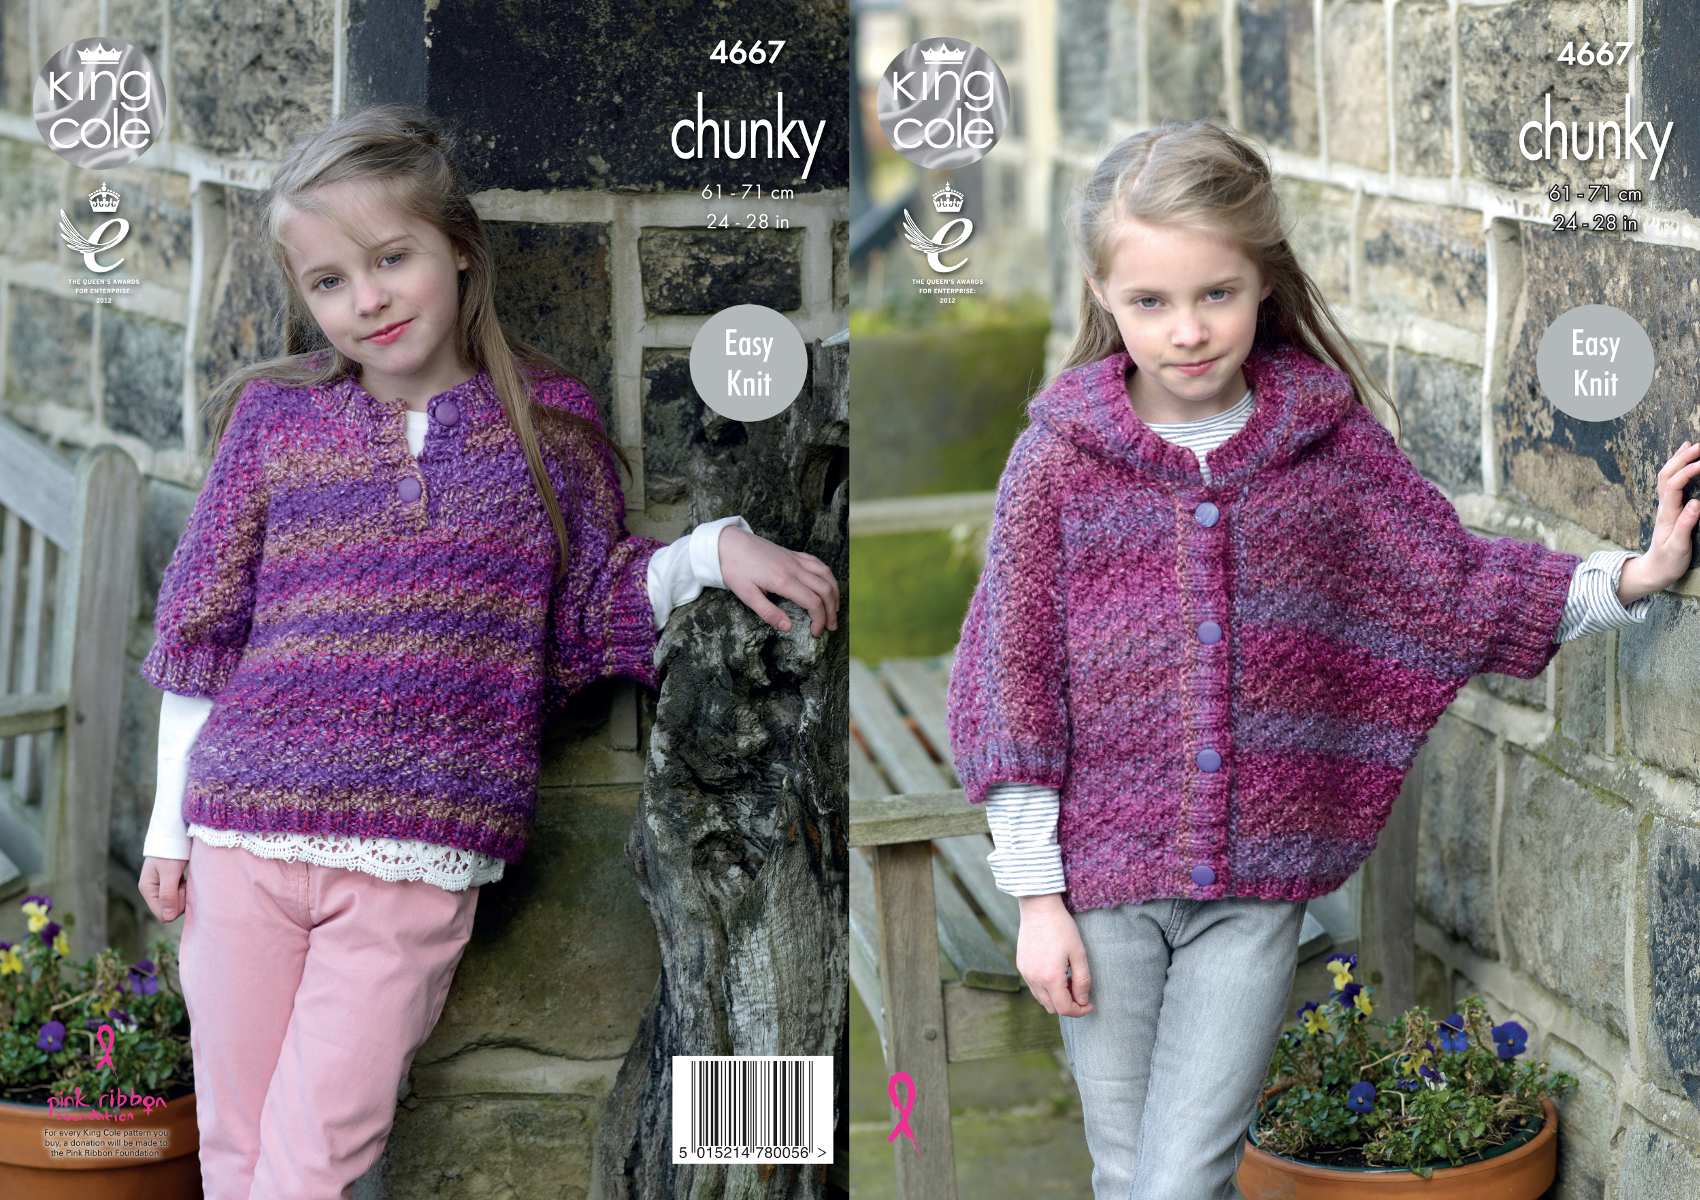 Poncho Knitting Pattern Chunky Details About Easy Knit Girls Hooded Round Neck Poncho Knitting Pattern King Cole Chunky 4667